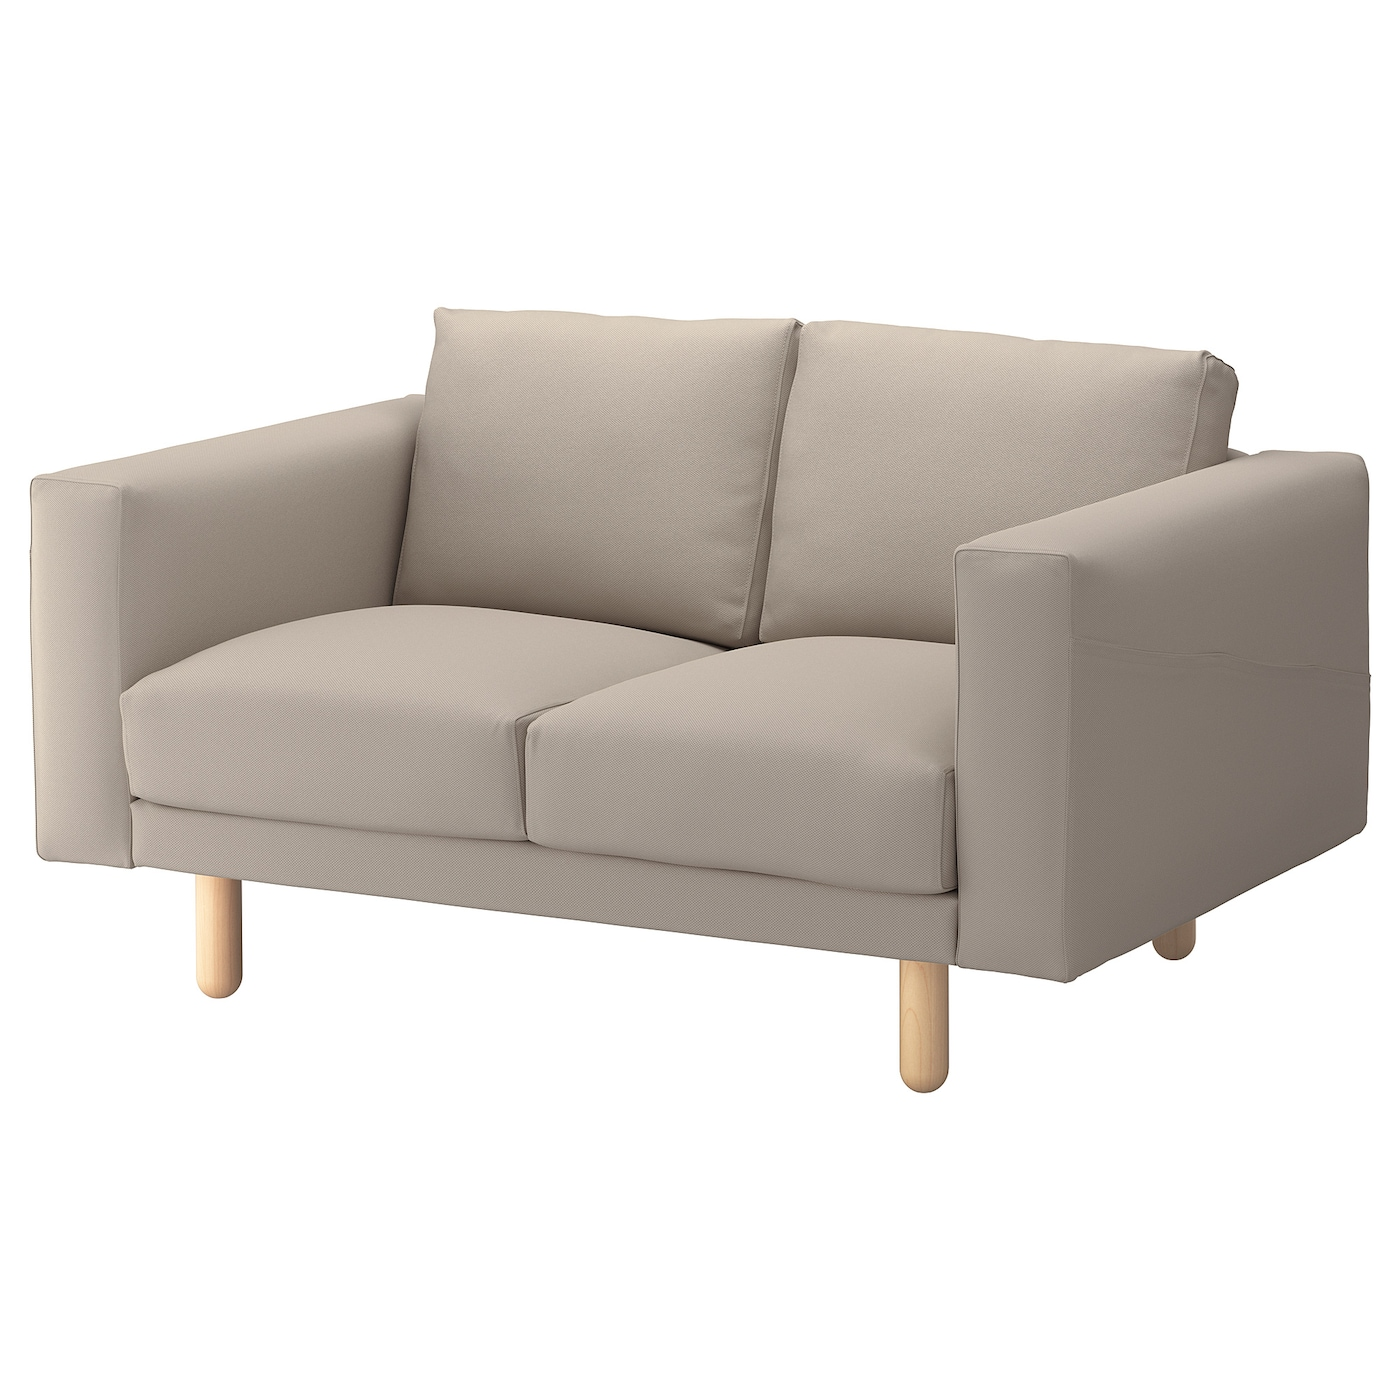 ikea norsborg 2seat sofa 10 year guarantee read about the terms in the